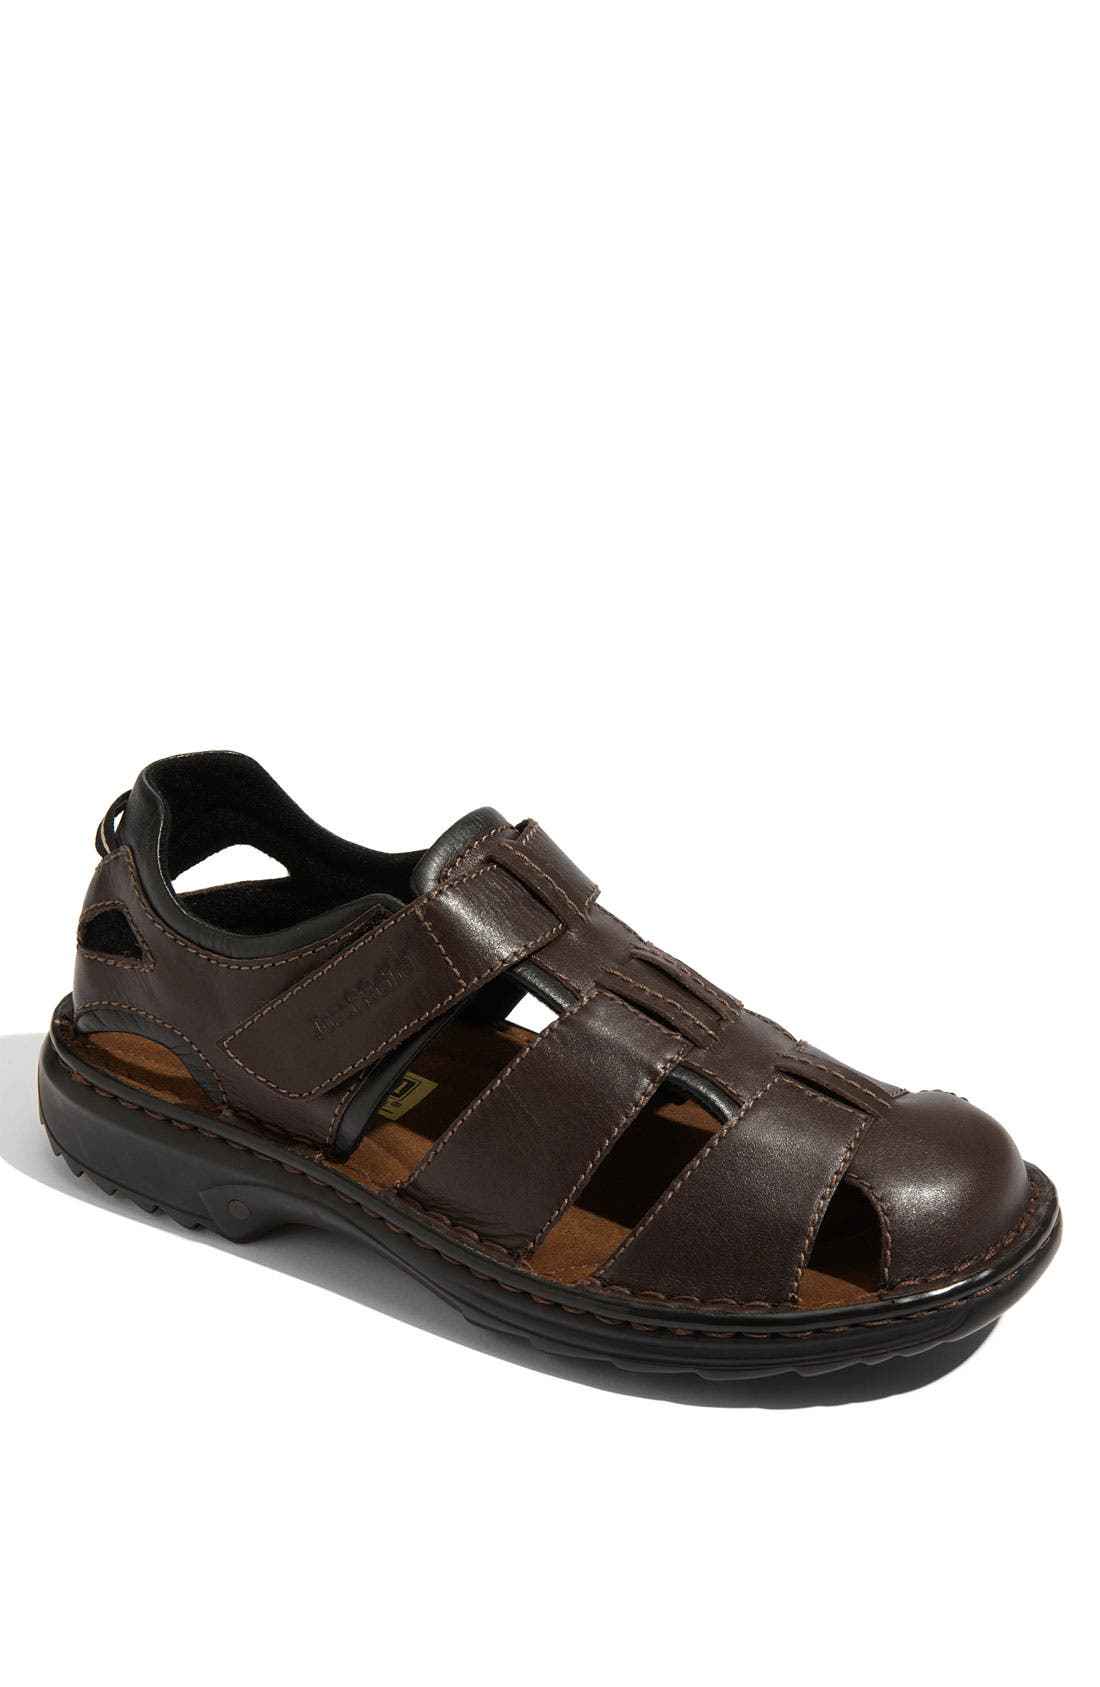 Alternate Image 1 Selected - Josef Seibel 'Jeremy' Sandal (Men)